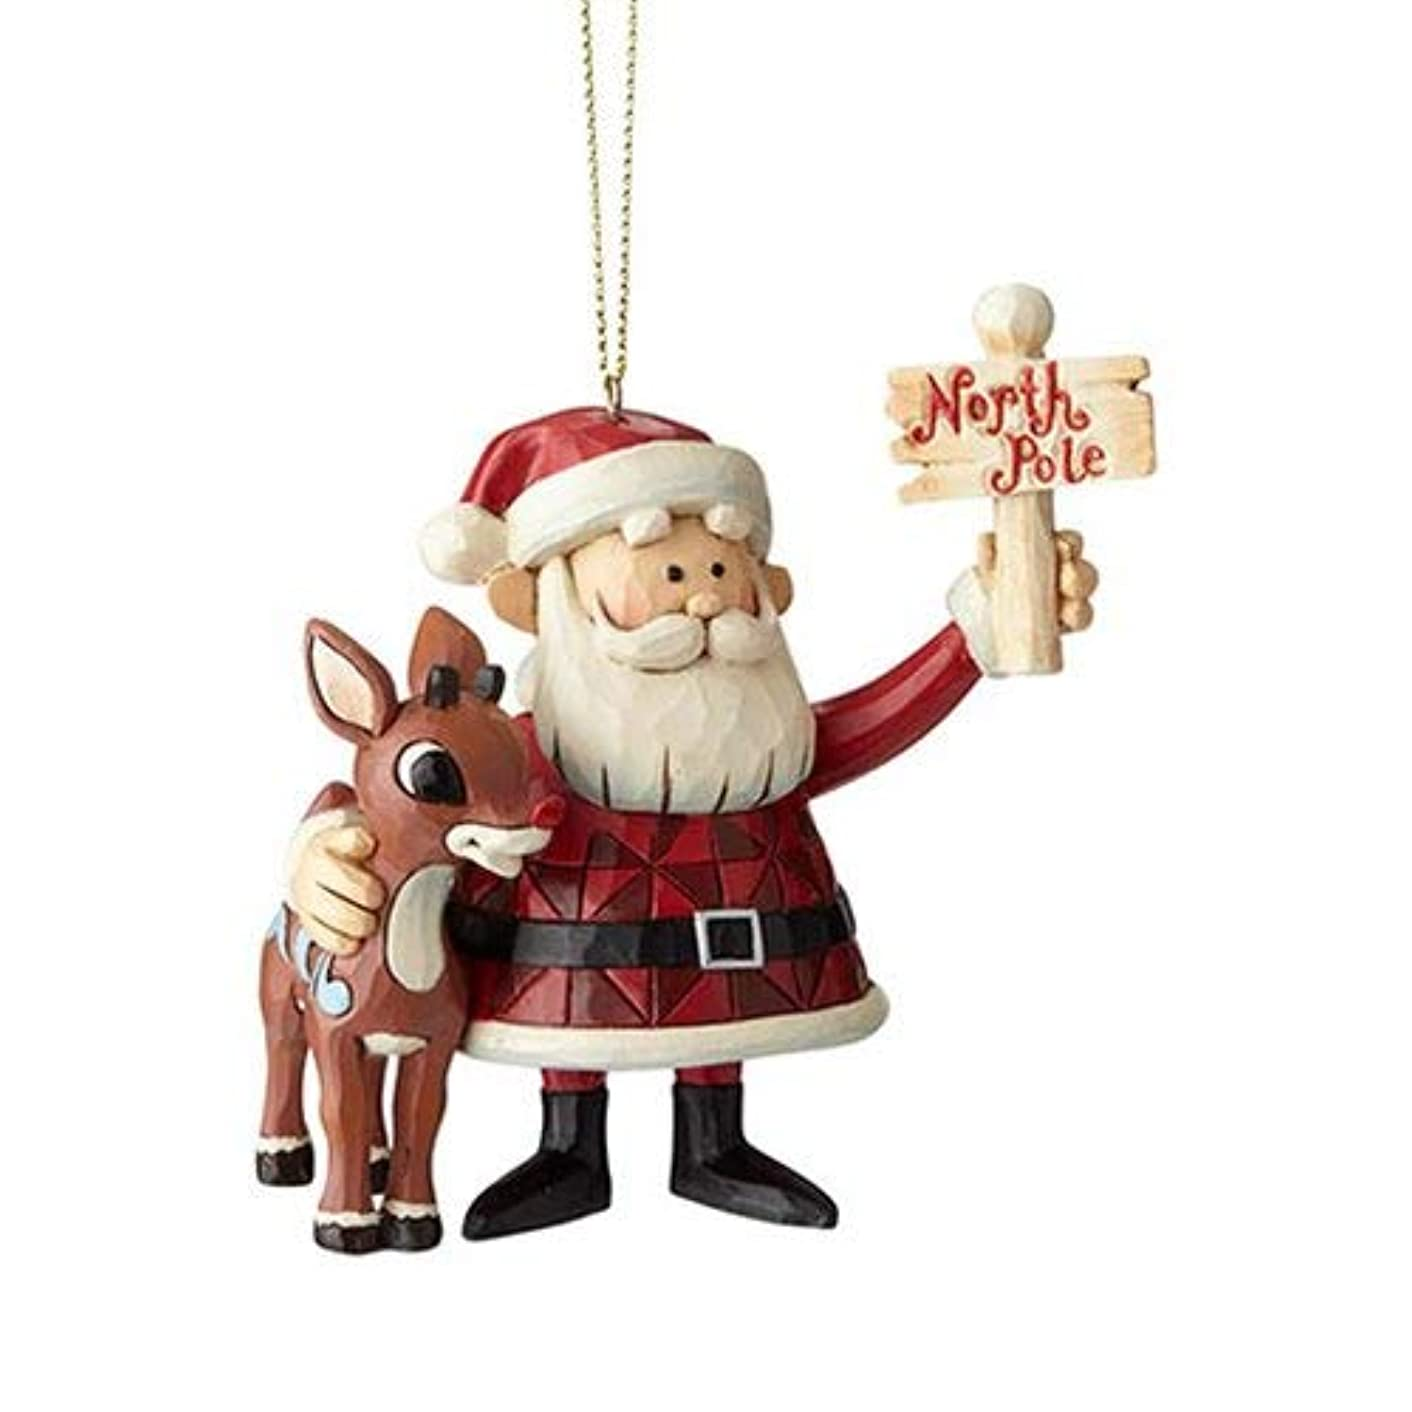 Enesco Rudolph The Red Nosed Reindeer by Jim Shore Santa North Pole Hanging Ornament, 3.7